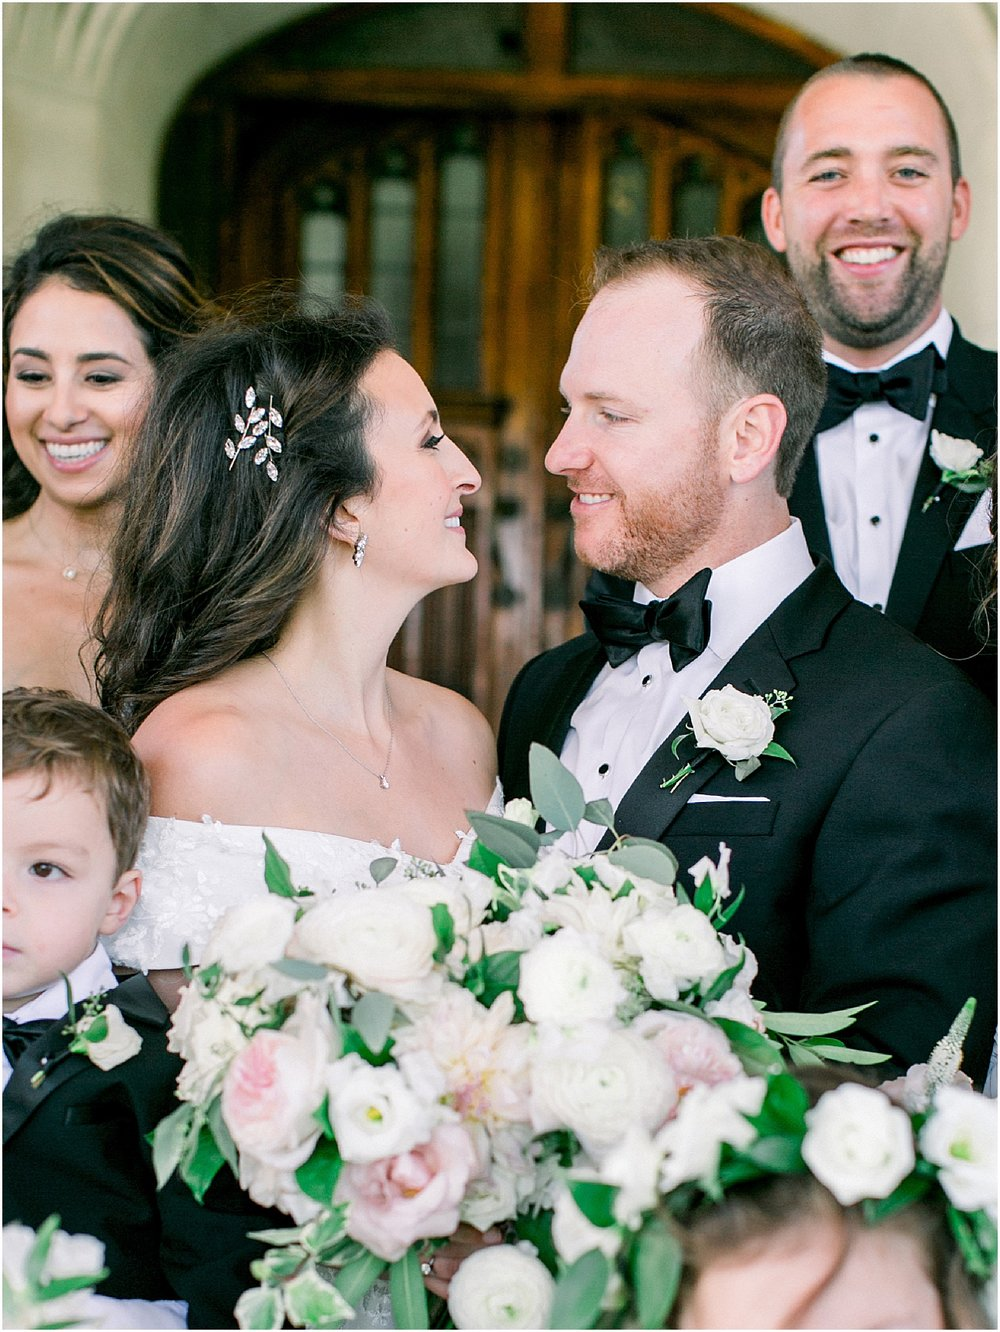 our_wedding_day_troy_NY_emma_willard_fairy_tale_royal_neutral_beauty_and_the_beast_moped_private_estate_cape_cod_boston_wedding_photographer_meredith_jane_photography_chris_kerr_photo_1971.jpg